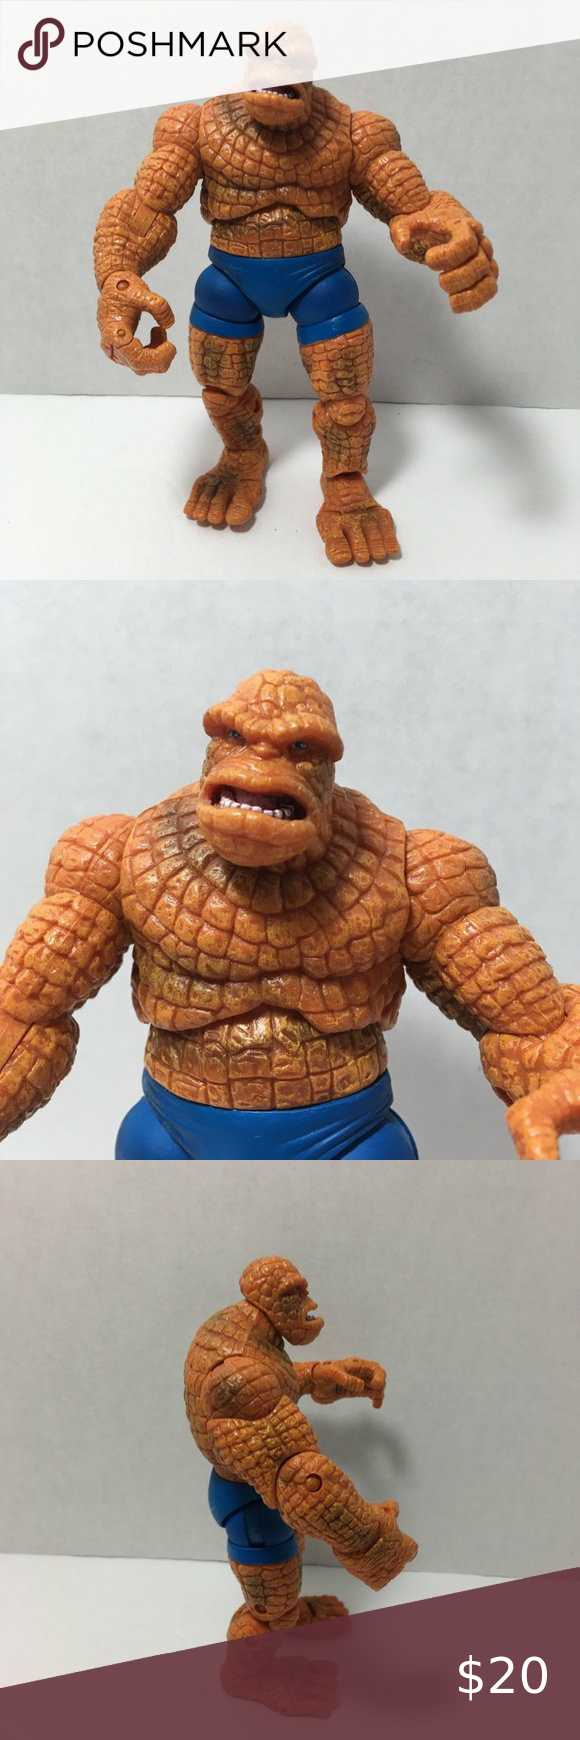 The Thing Marvel 2006 6 5 Articulated Fantastic 4 In 2021 Toy Story Figures Marvel Toys Funko Pop Star Wars